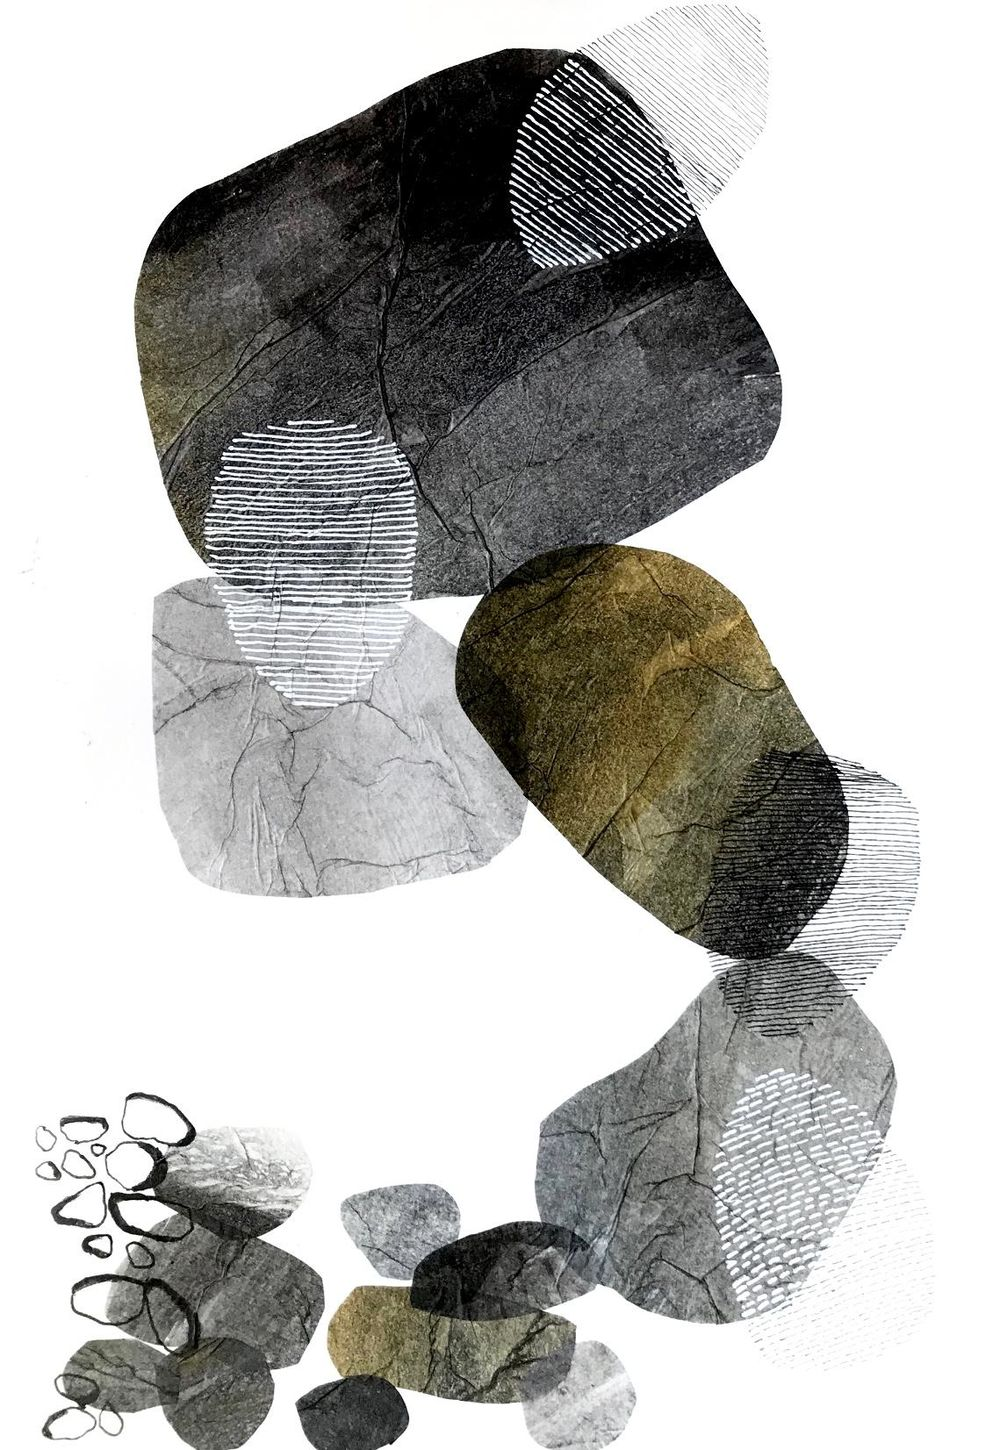 collage - image 4 - student project